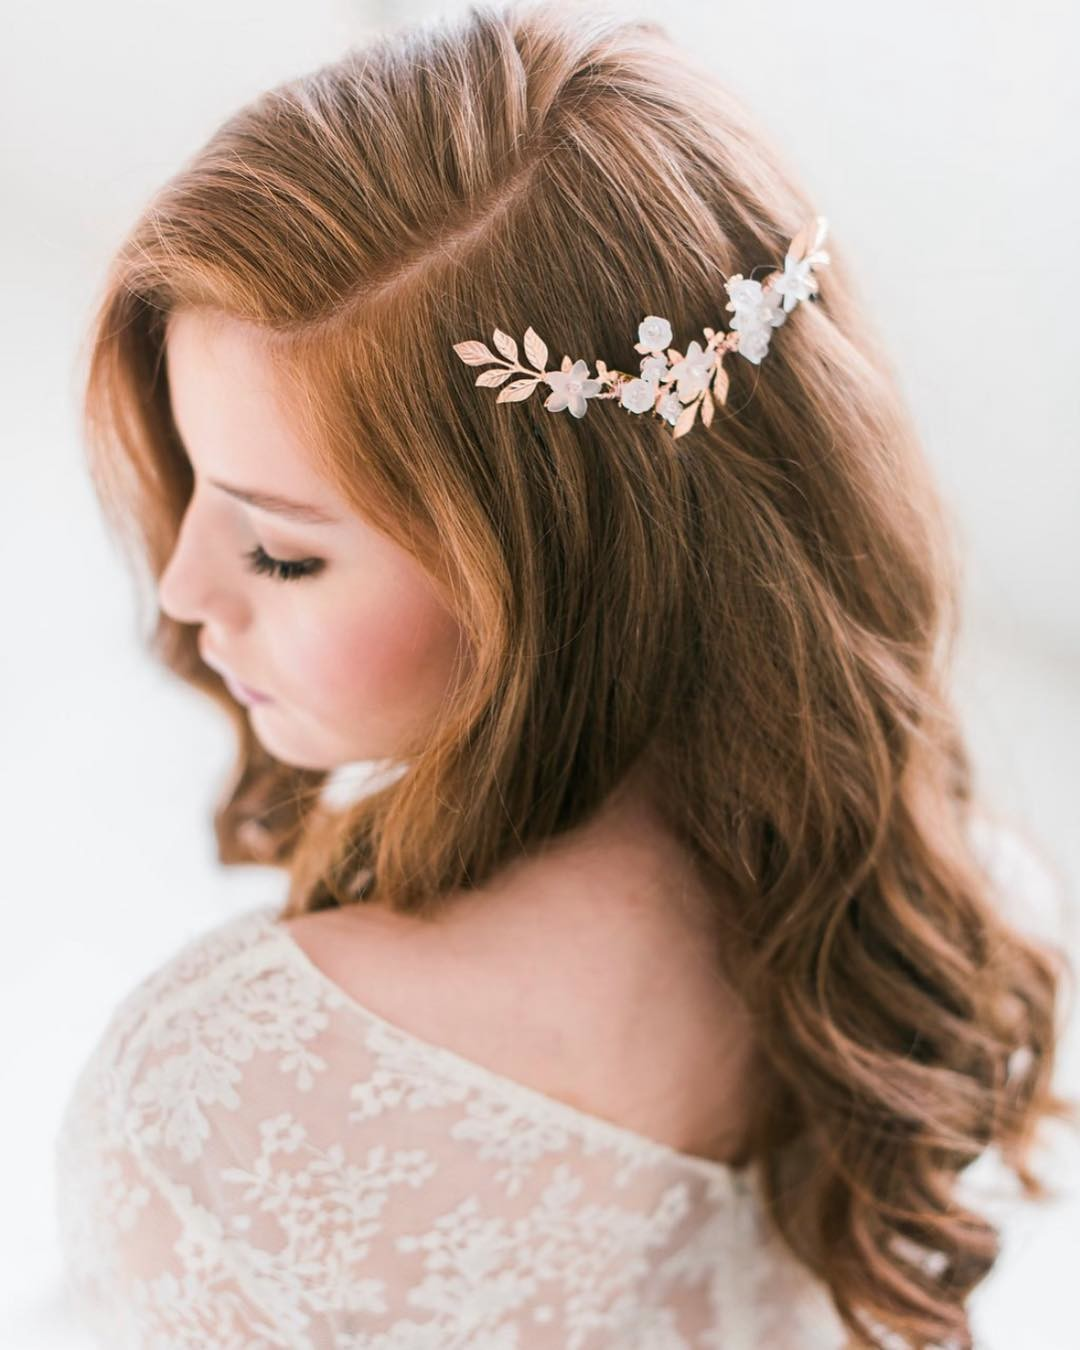 Our rose gold floral hair comb features hand wired floral elements, crystals and rose gold accents. All handmade in the USA. Photo